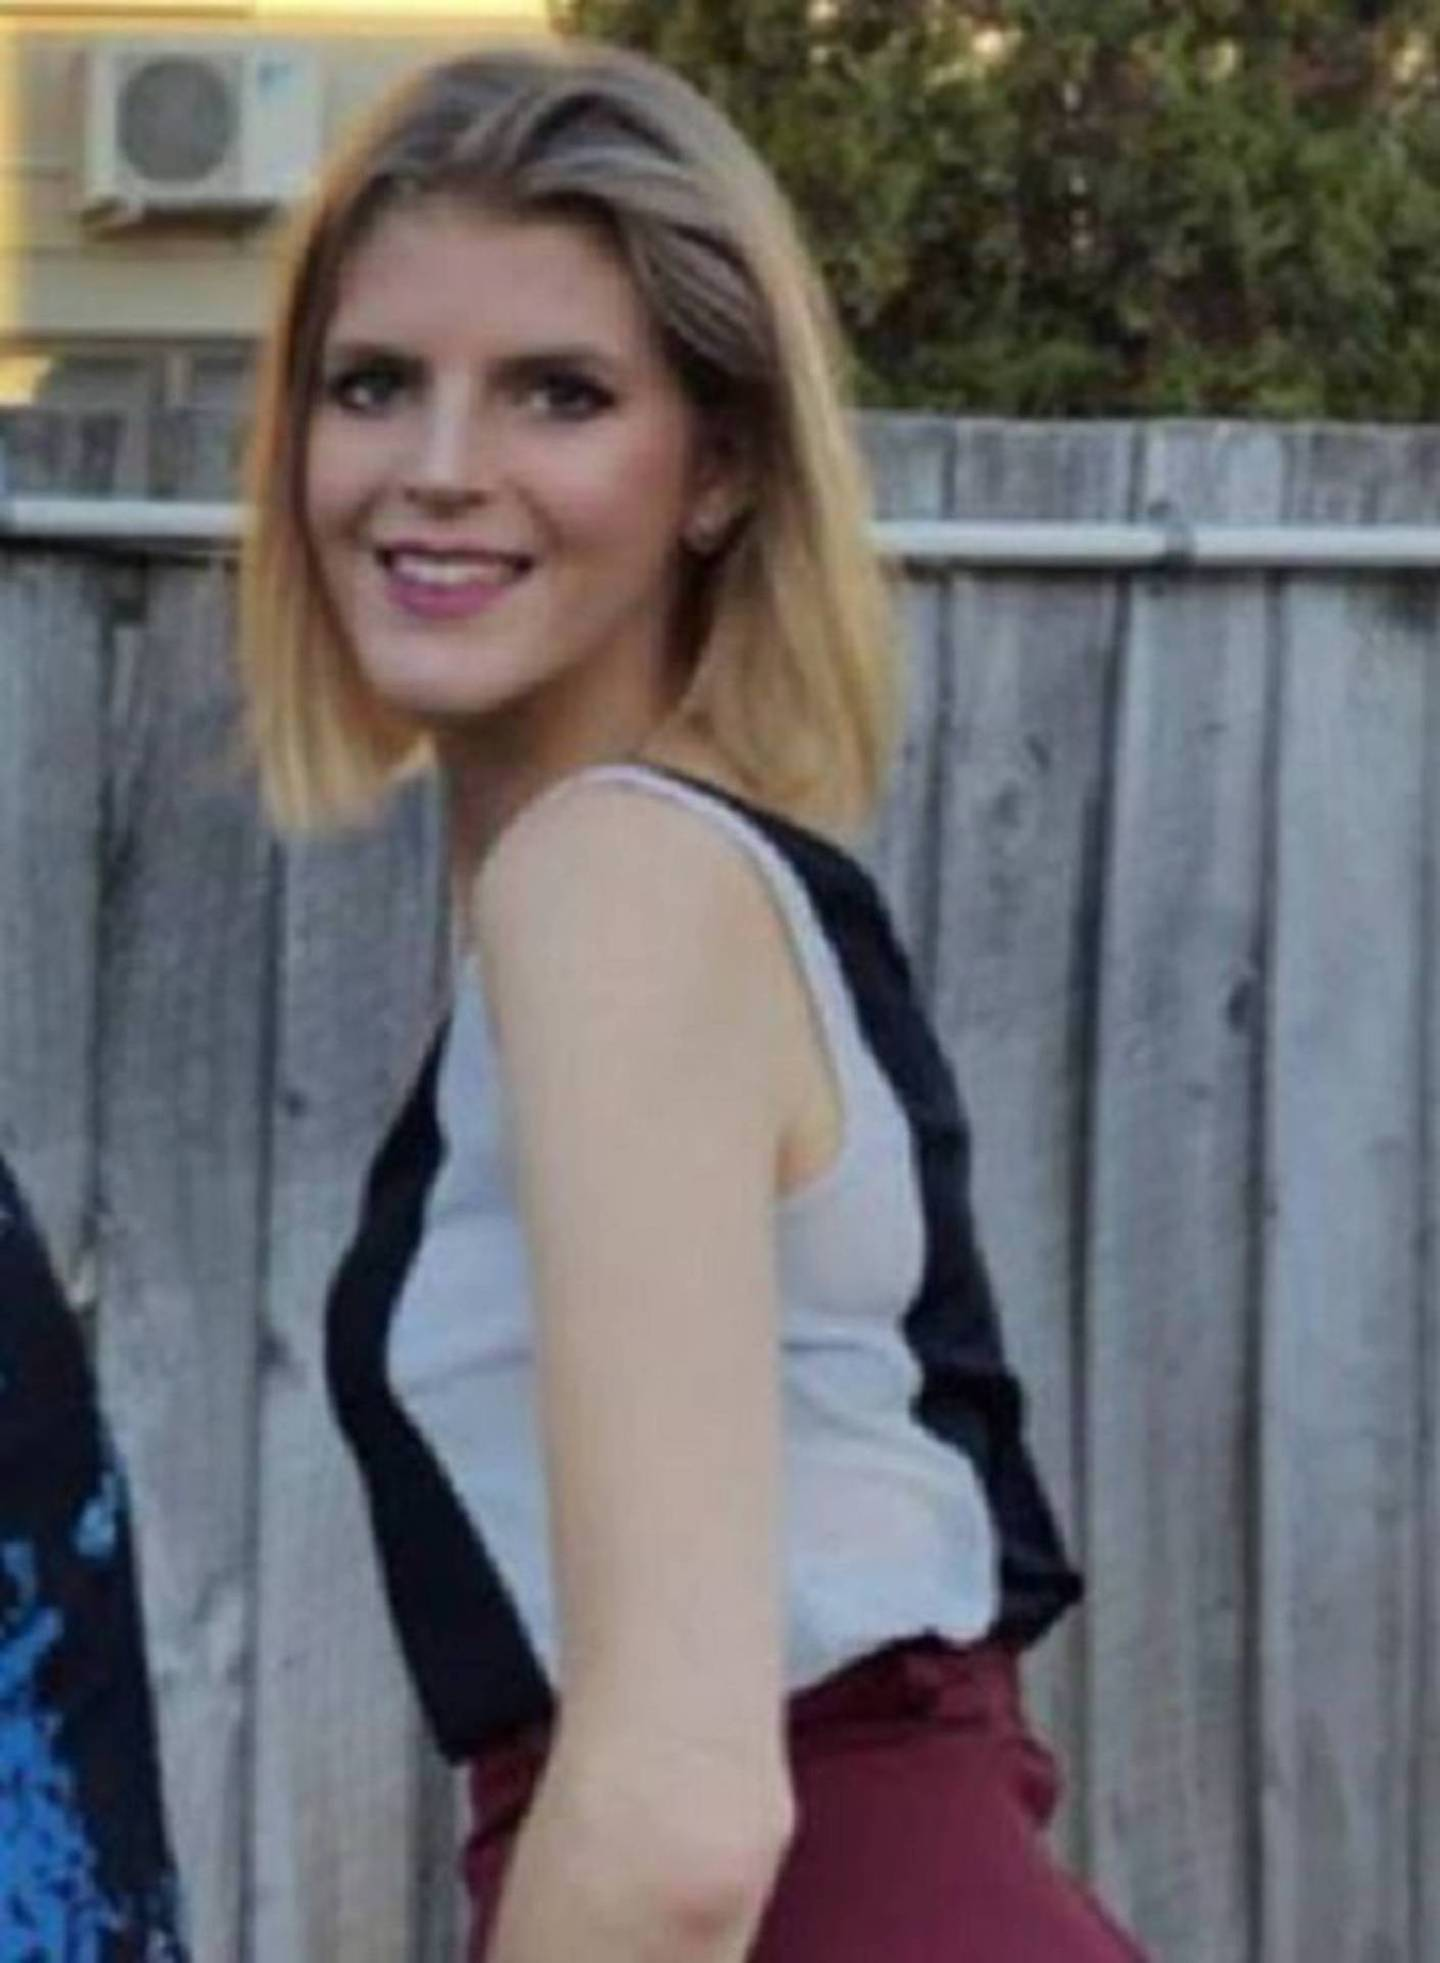 Megan Nelis spent months in the South Island Eating Disorder Service ward as she battled anorexia...